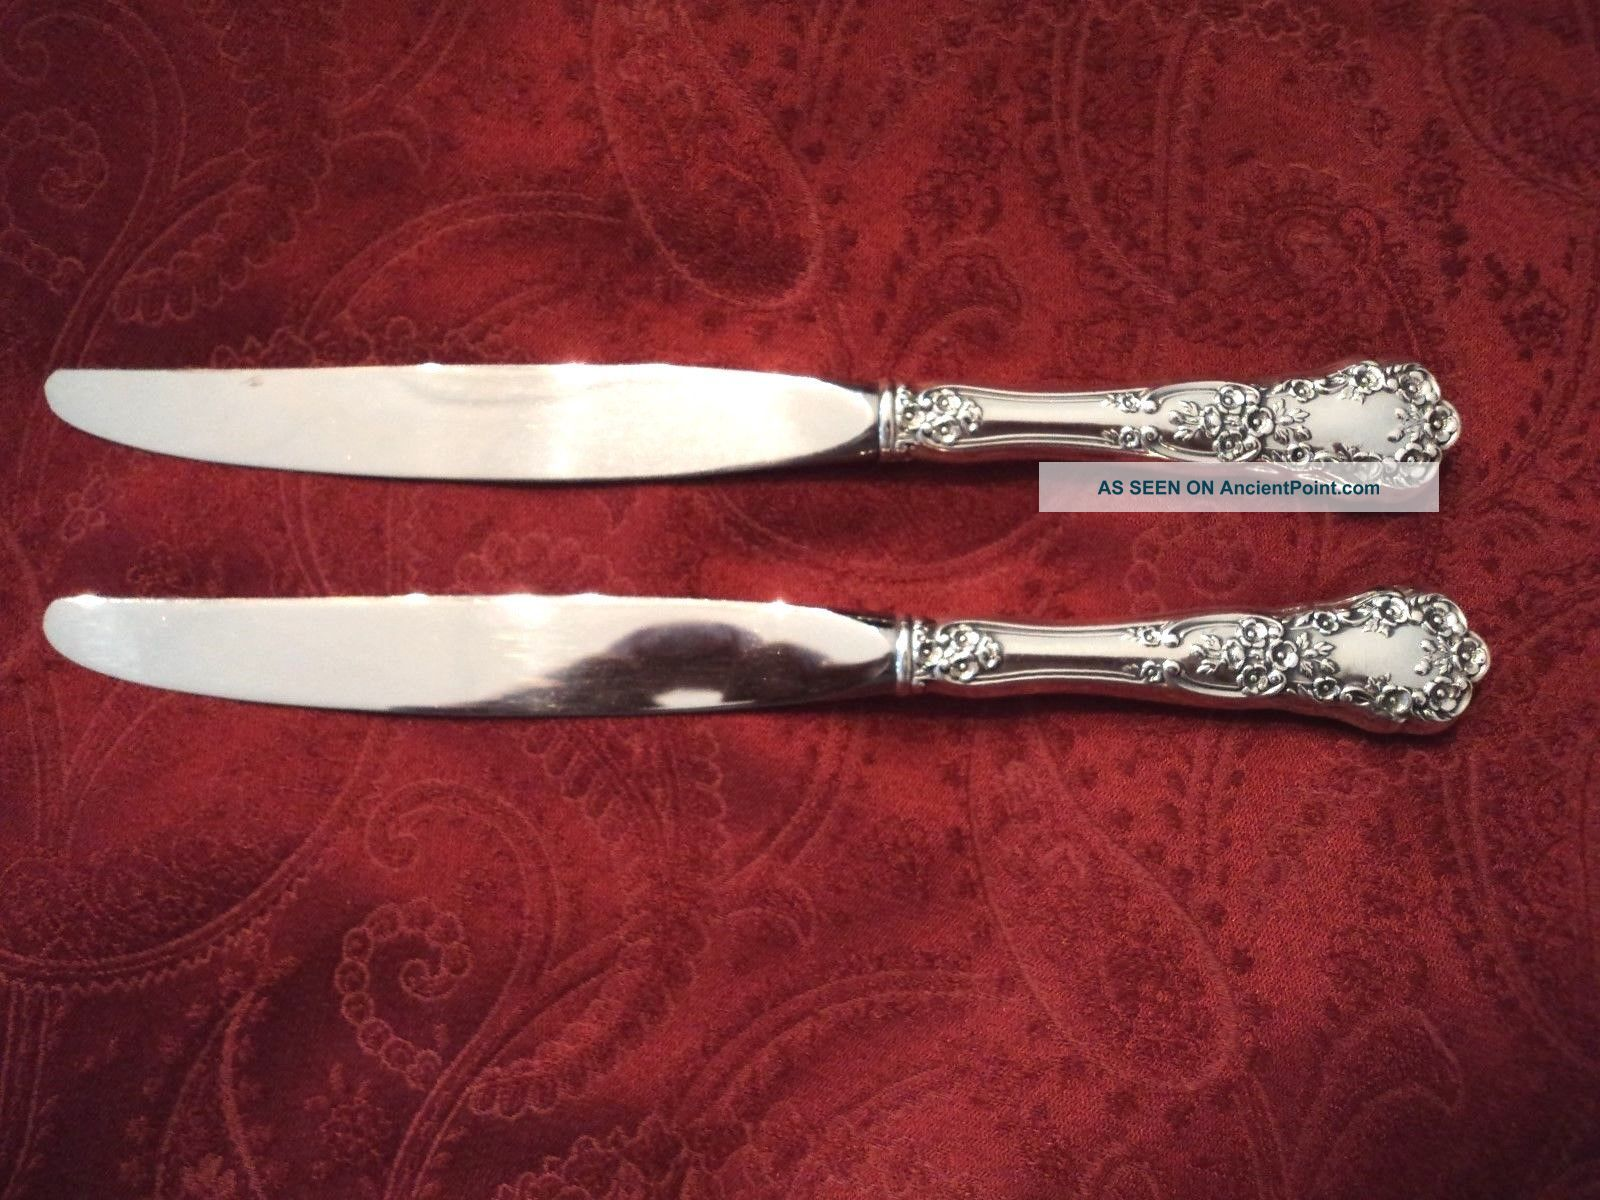 2 - Gorham Buttercup Sterling Hh Dinner Knives 9 1/4